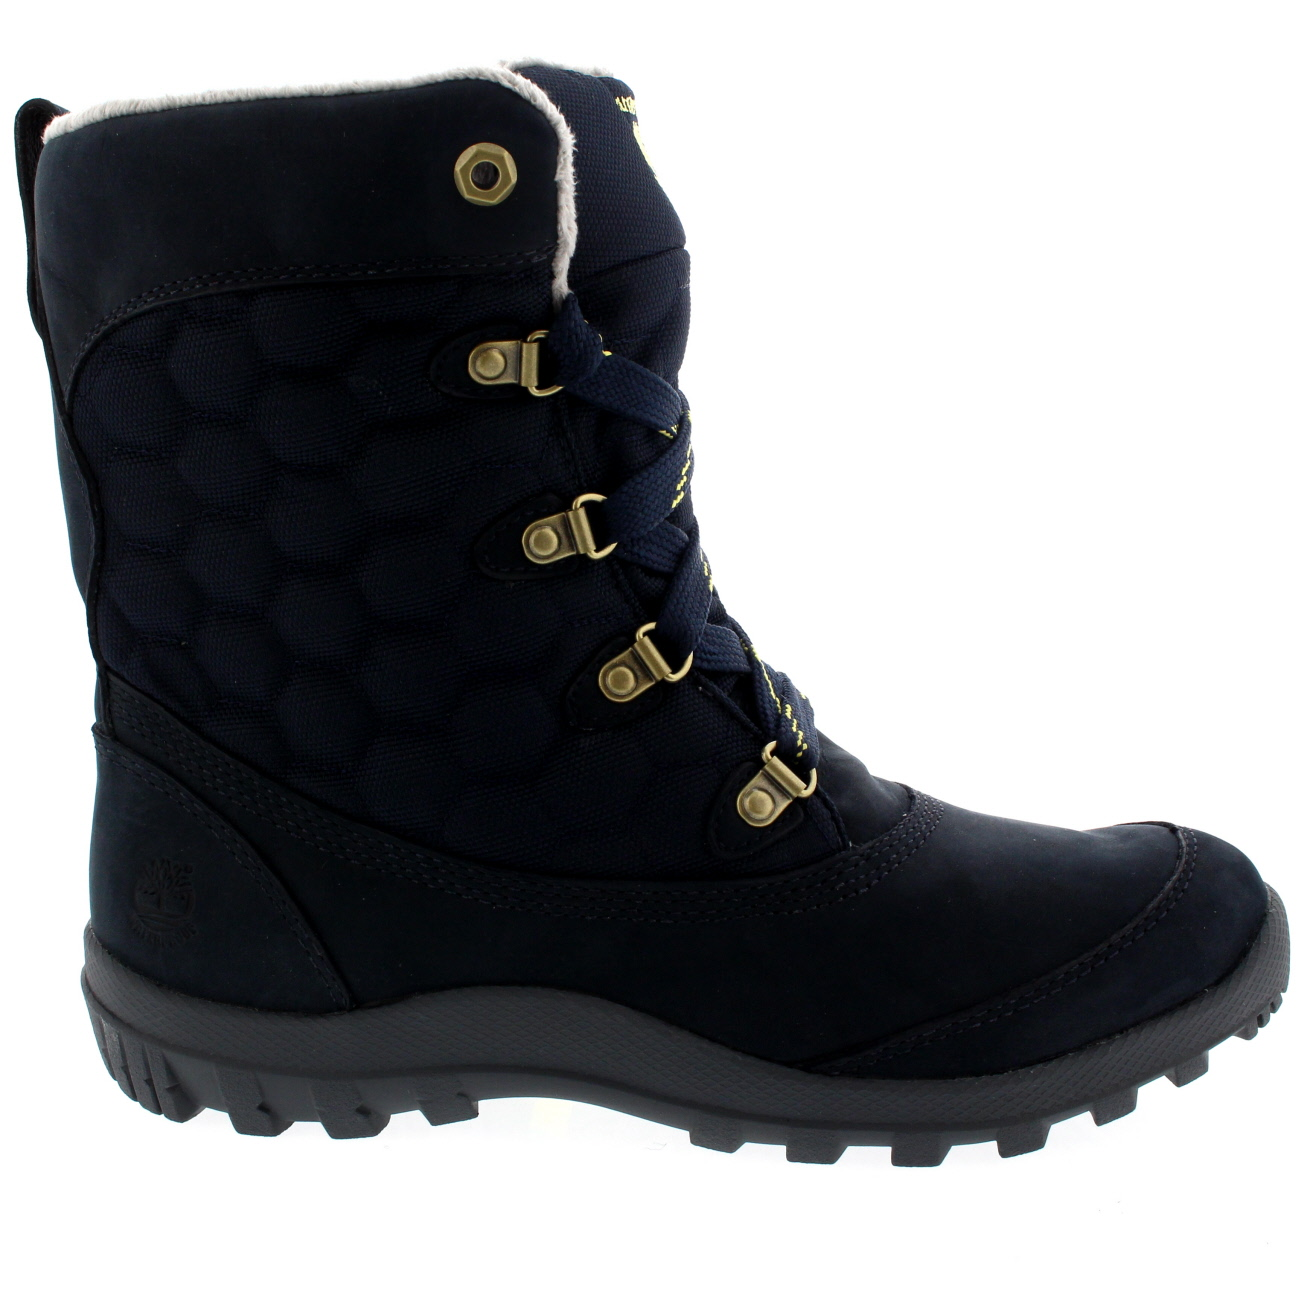 Womens Timberland Earthkeeper Mount Hope Winter Snow Rain